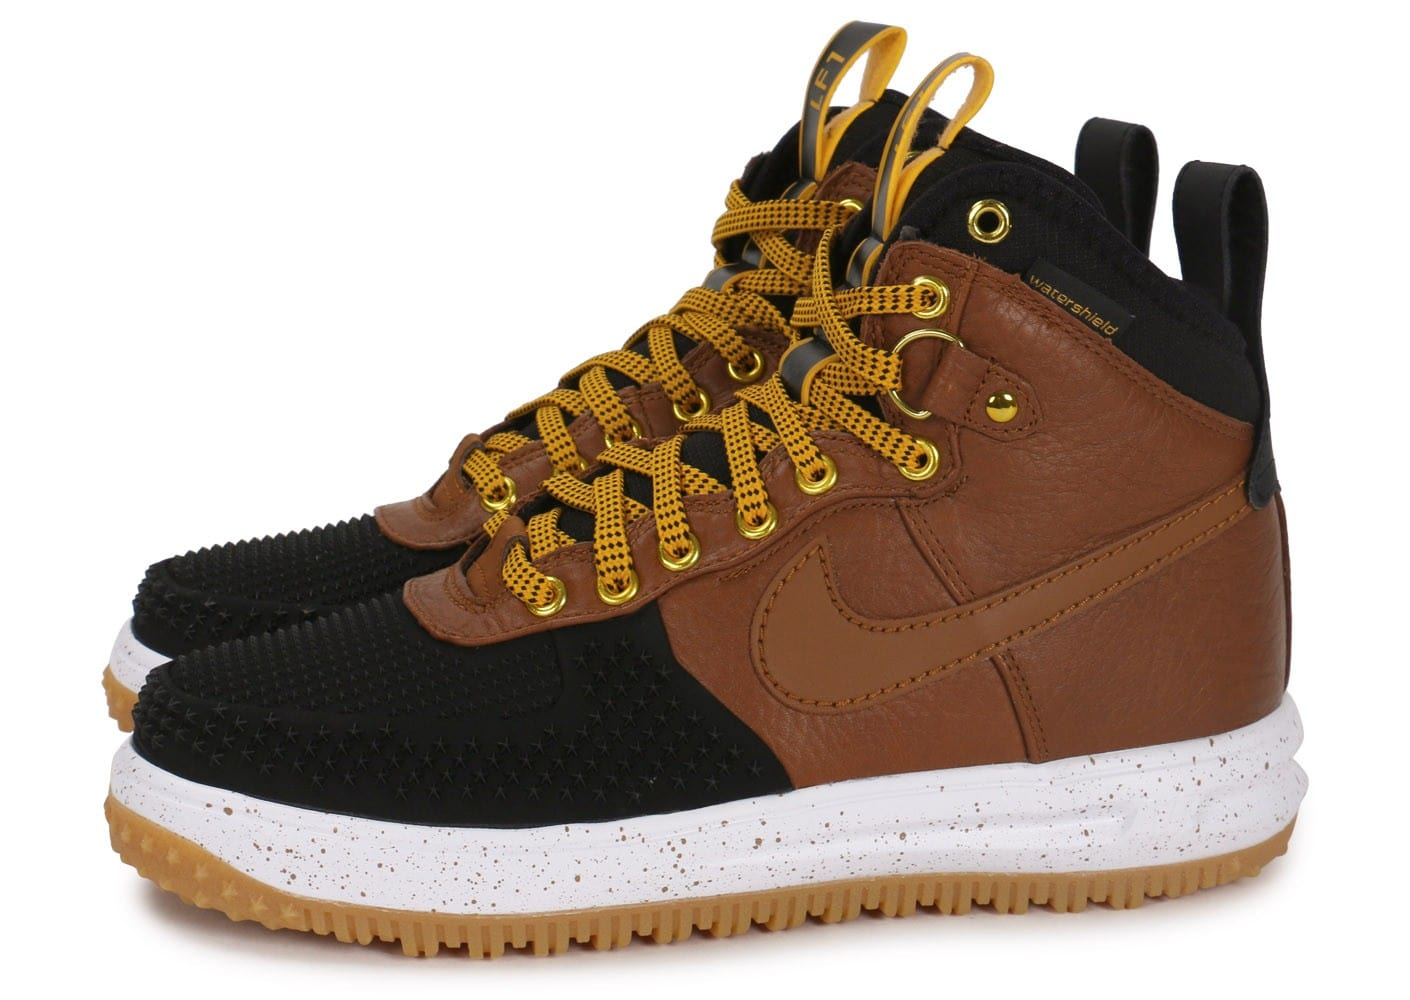 Nike Lunar Force 1 Duckboot British Tan Chaussures Baskets